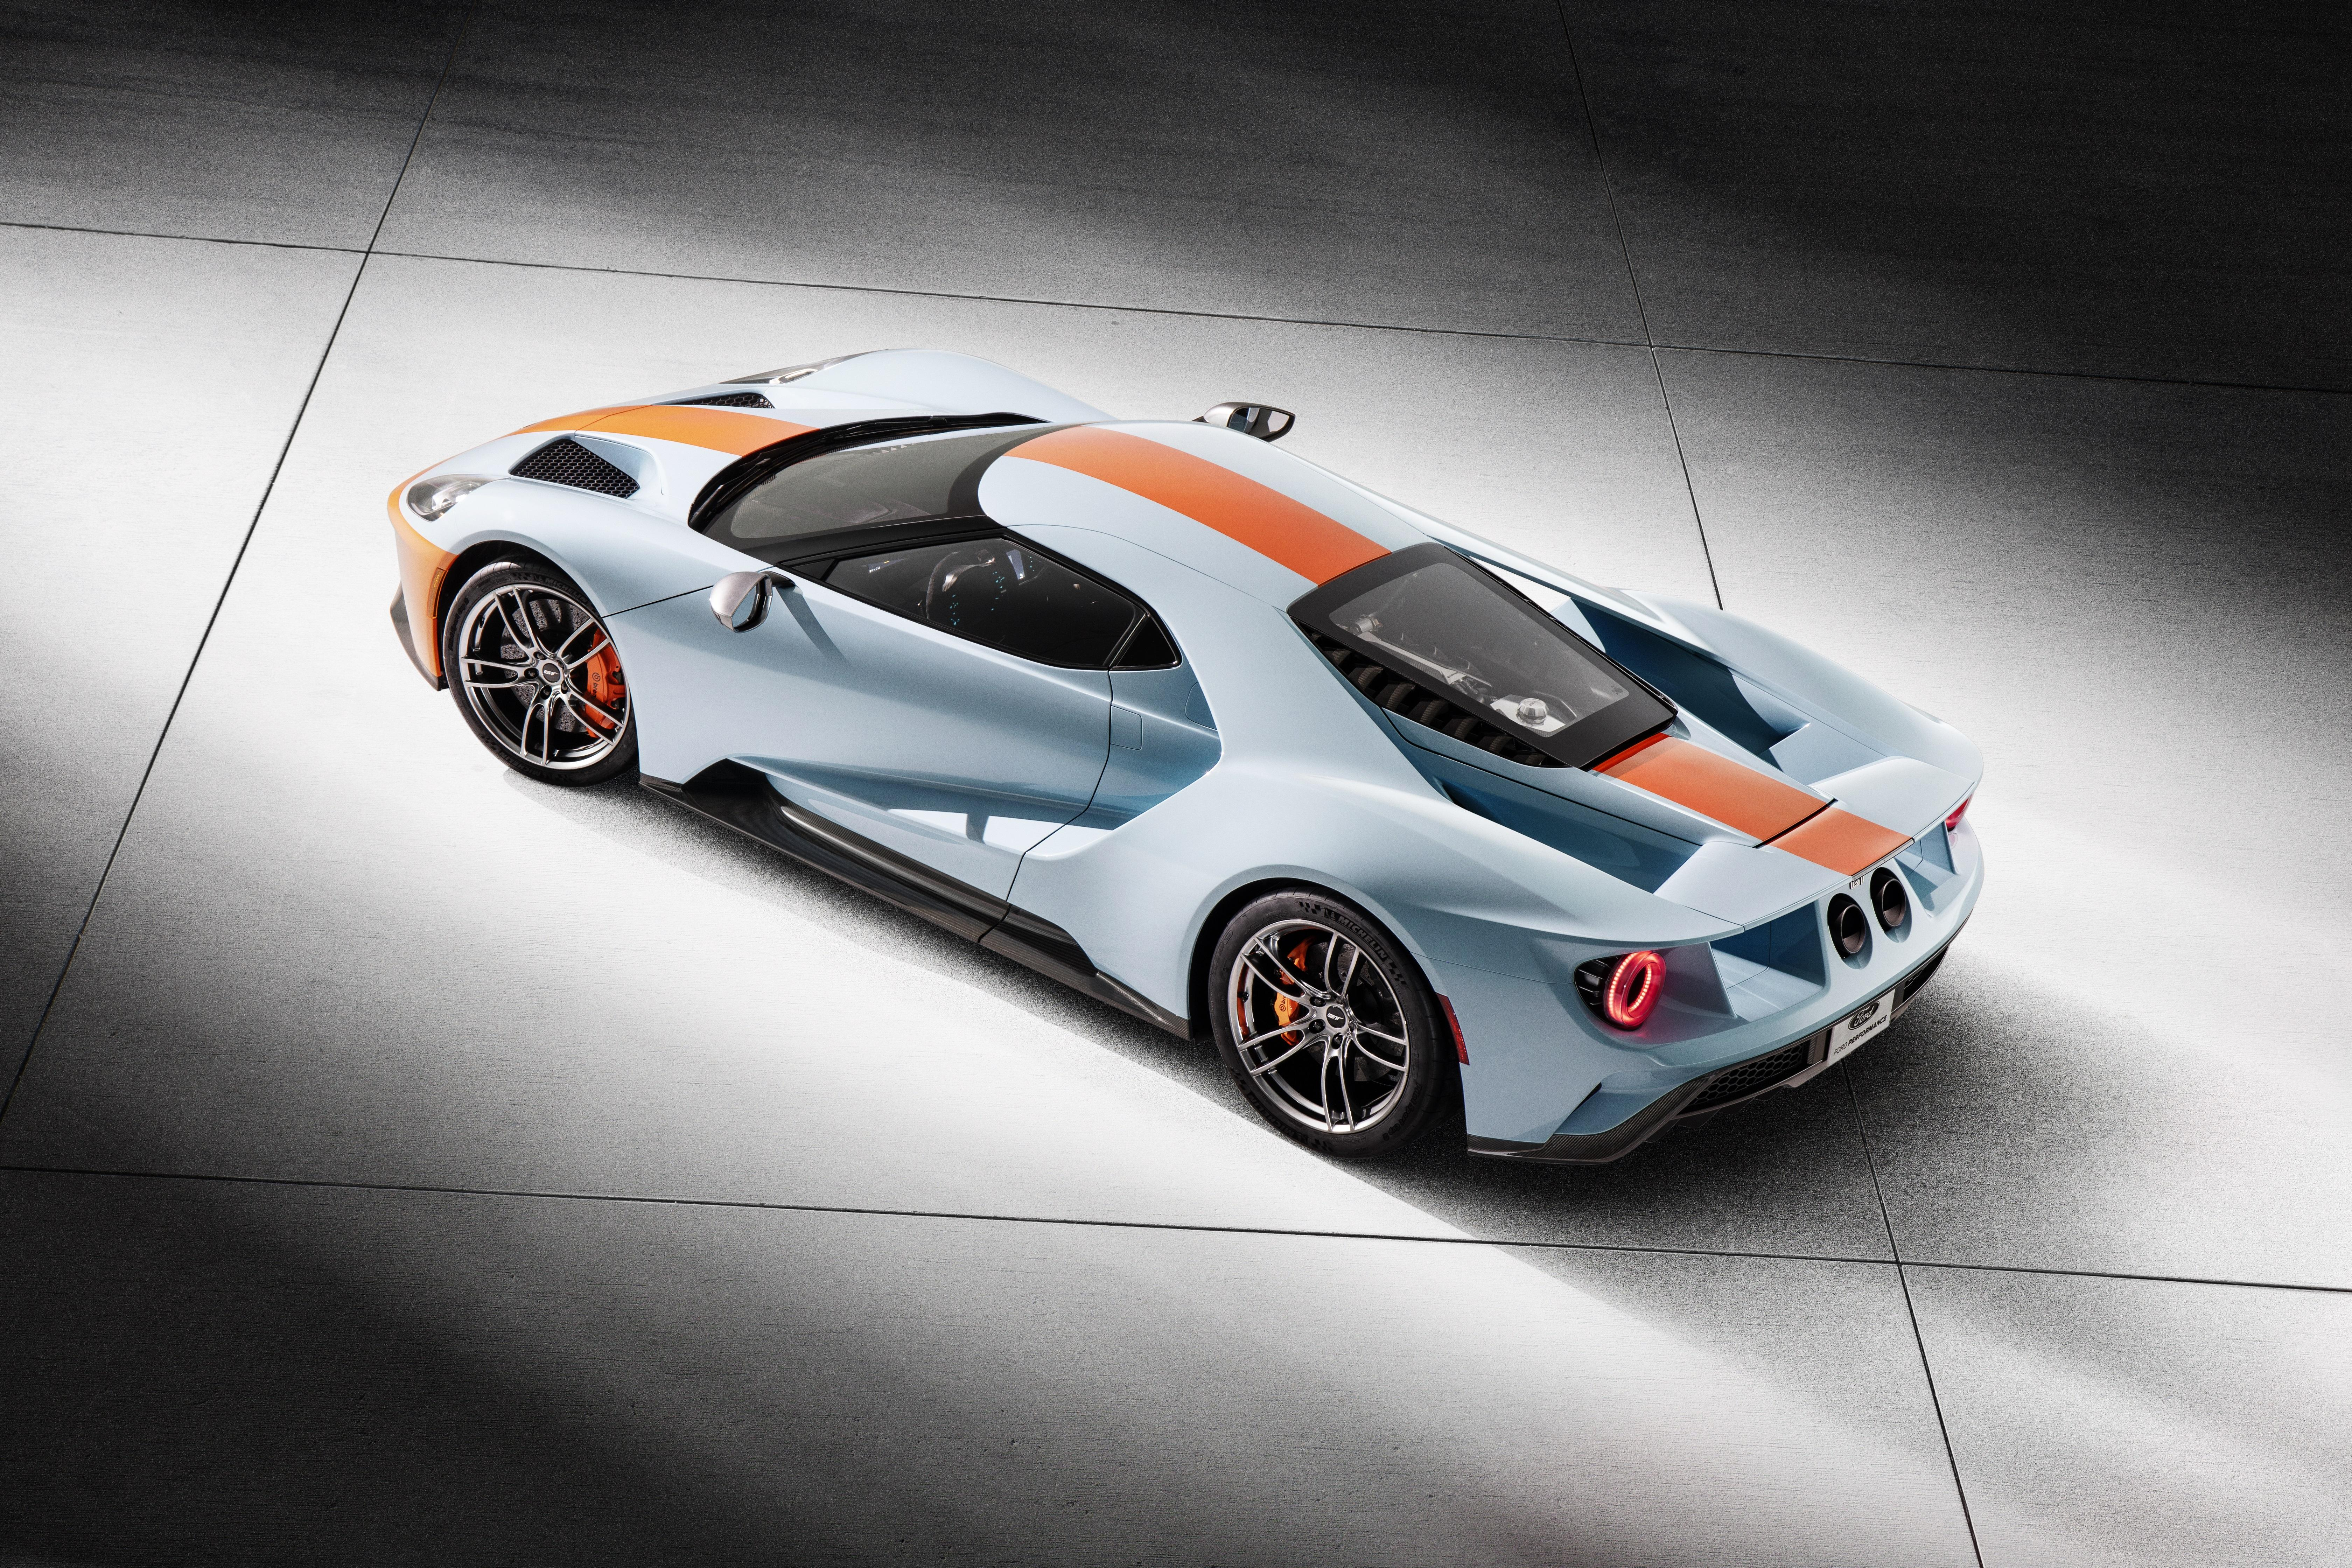 2019 Ford GT Gulf Heritage edition livery